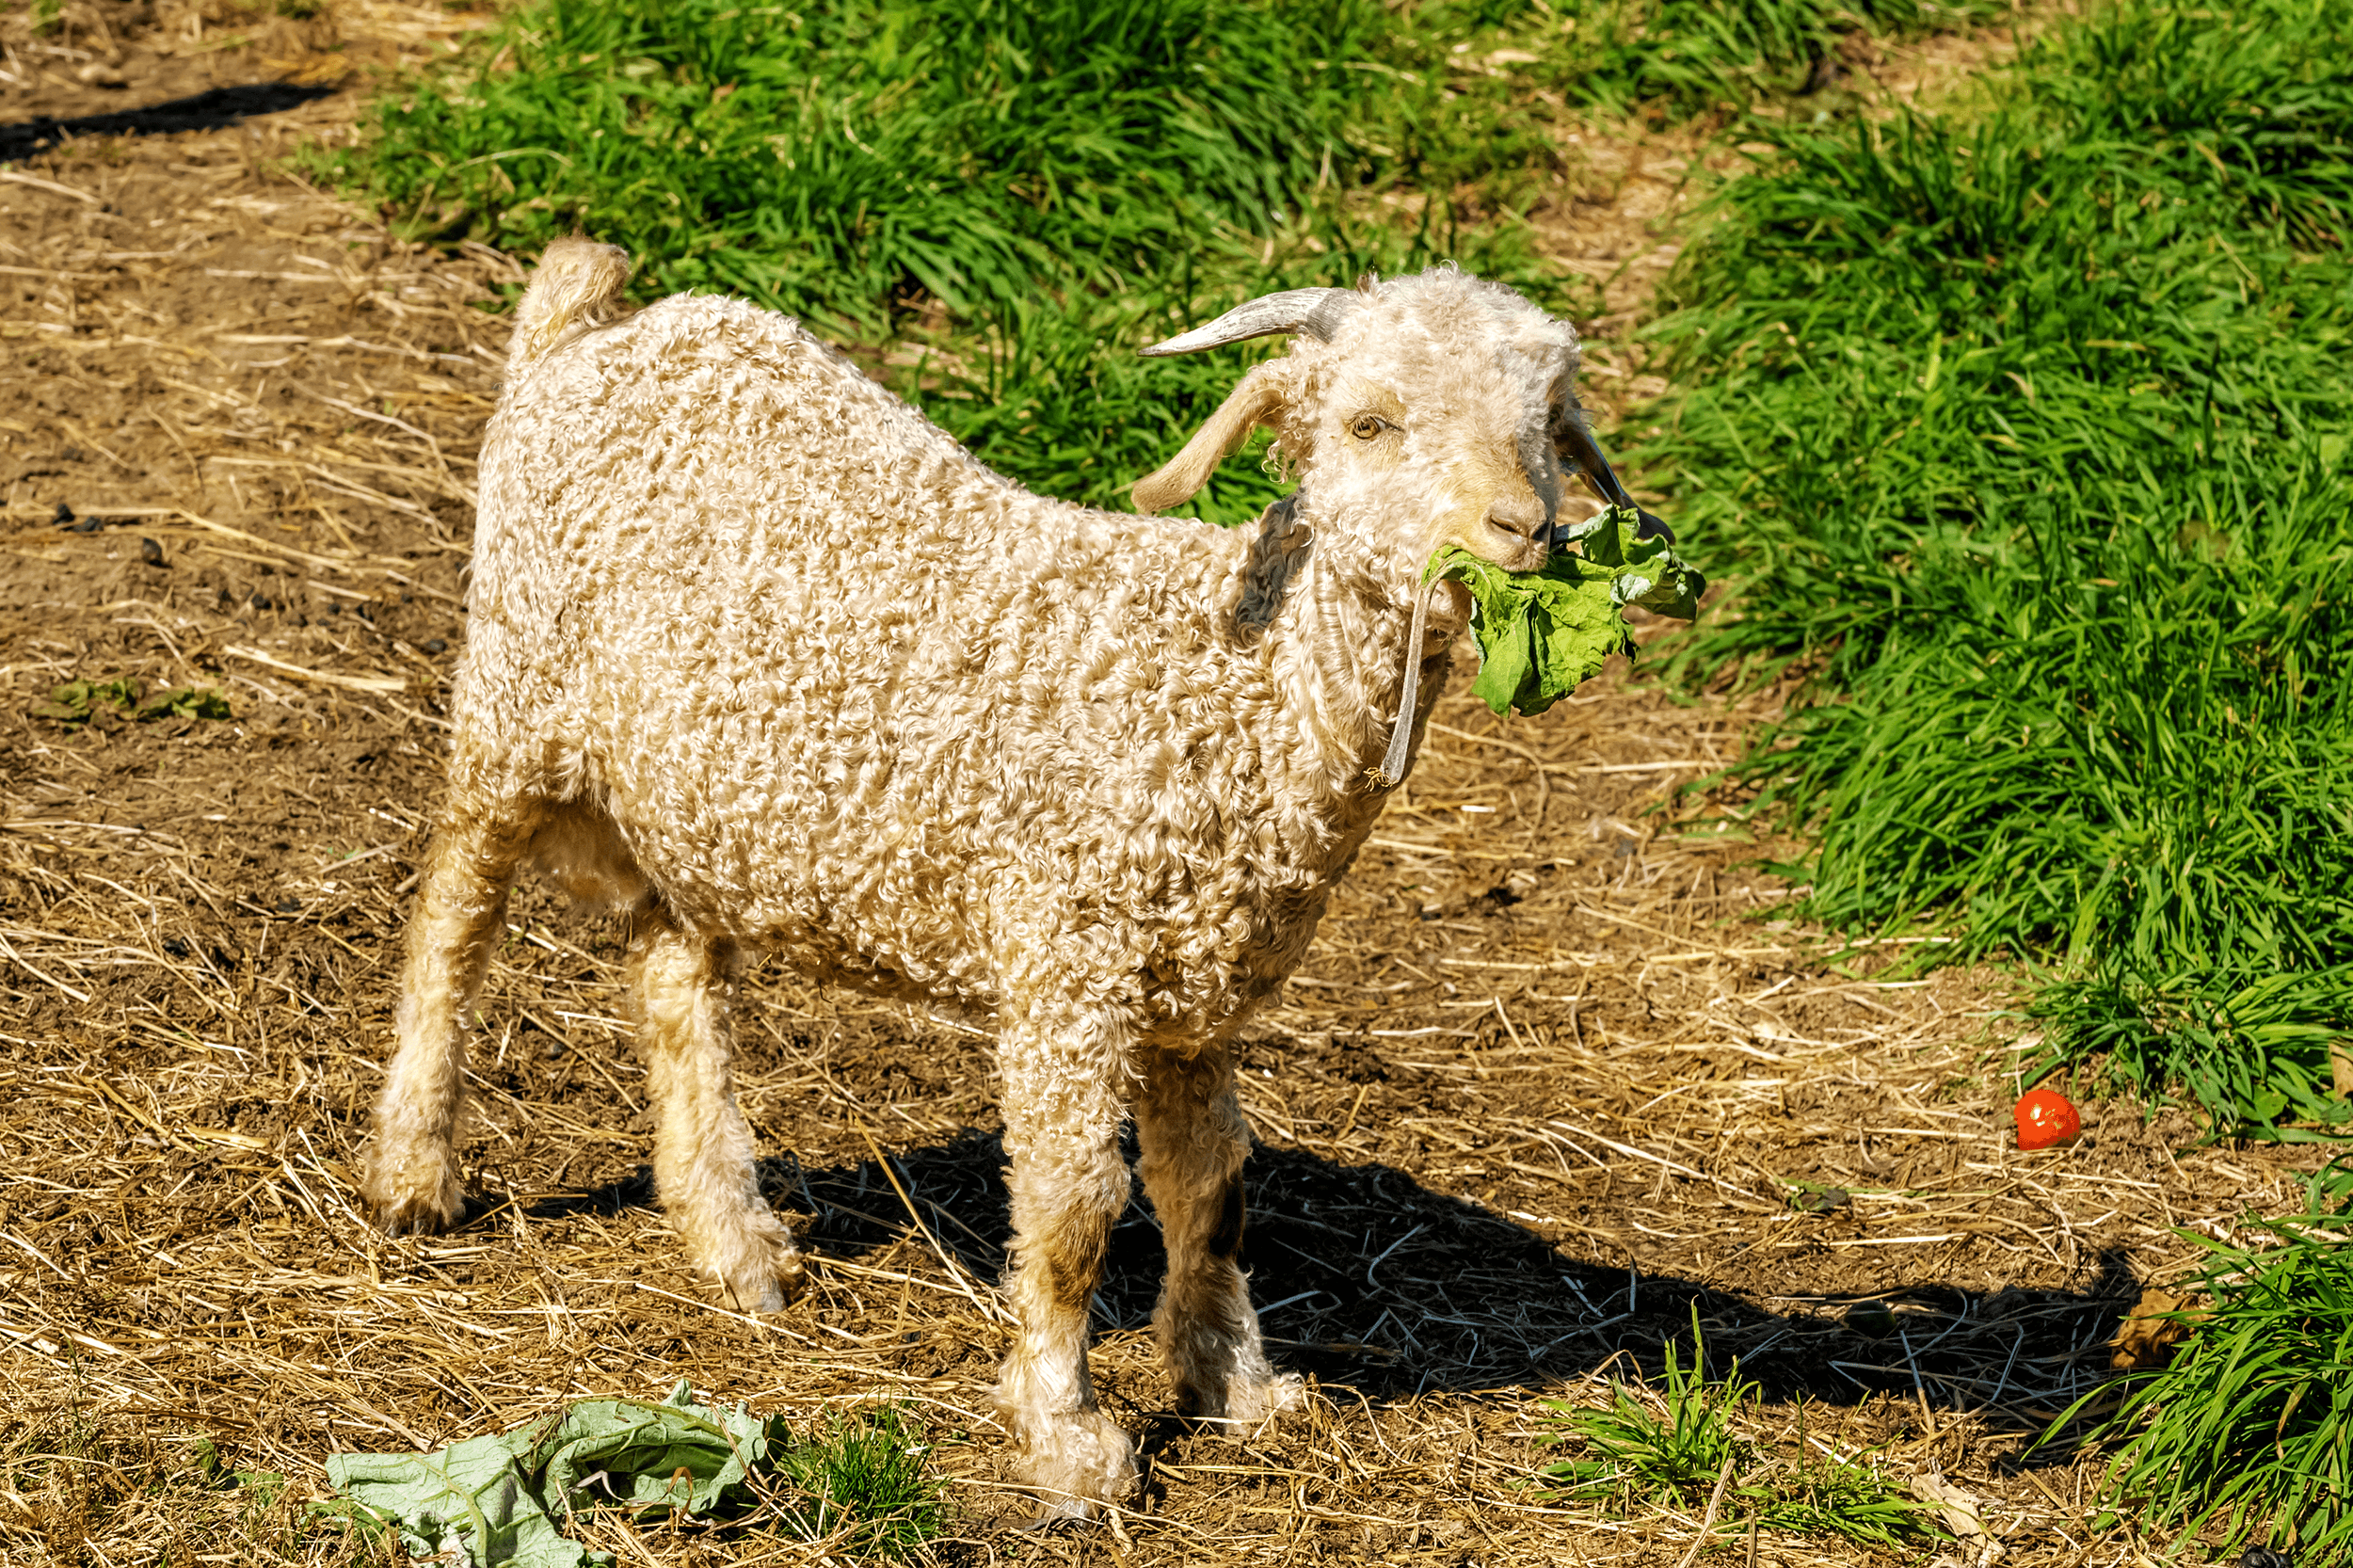 Well, a young angora goat is also adorable.